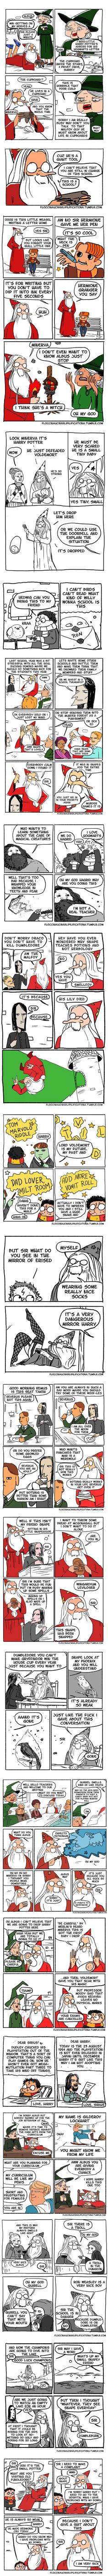 Dumblemore (By floccinaucinihilipilification)  DUMBLEBURN :D